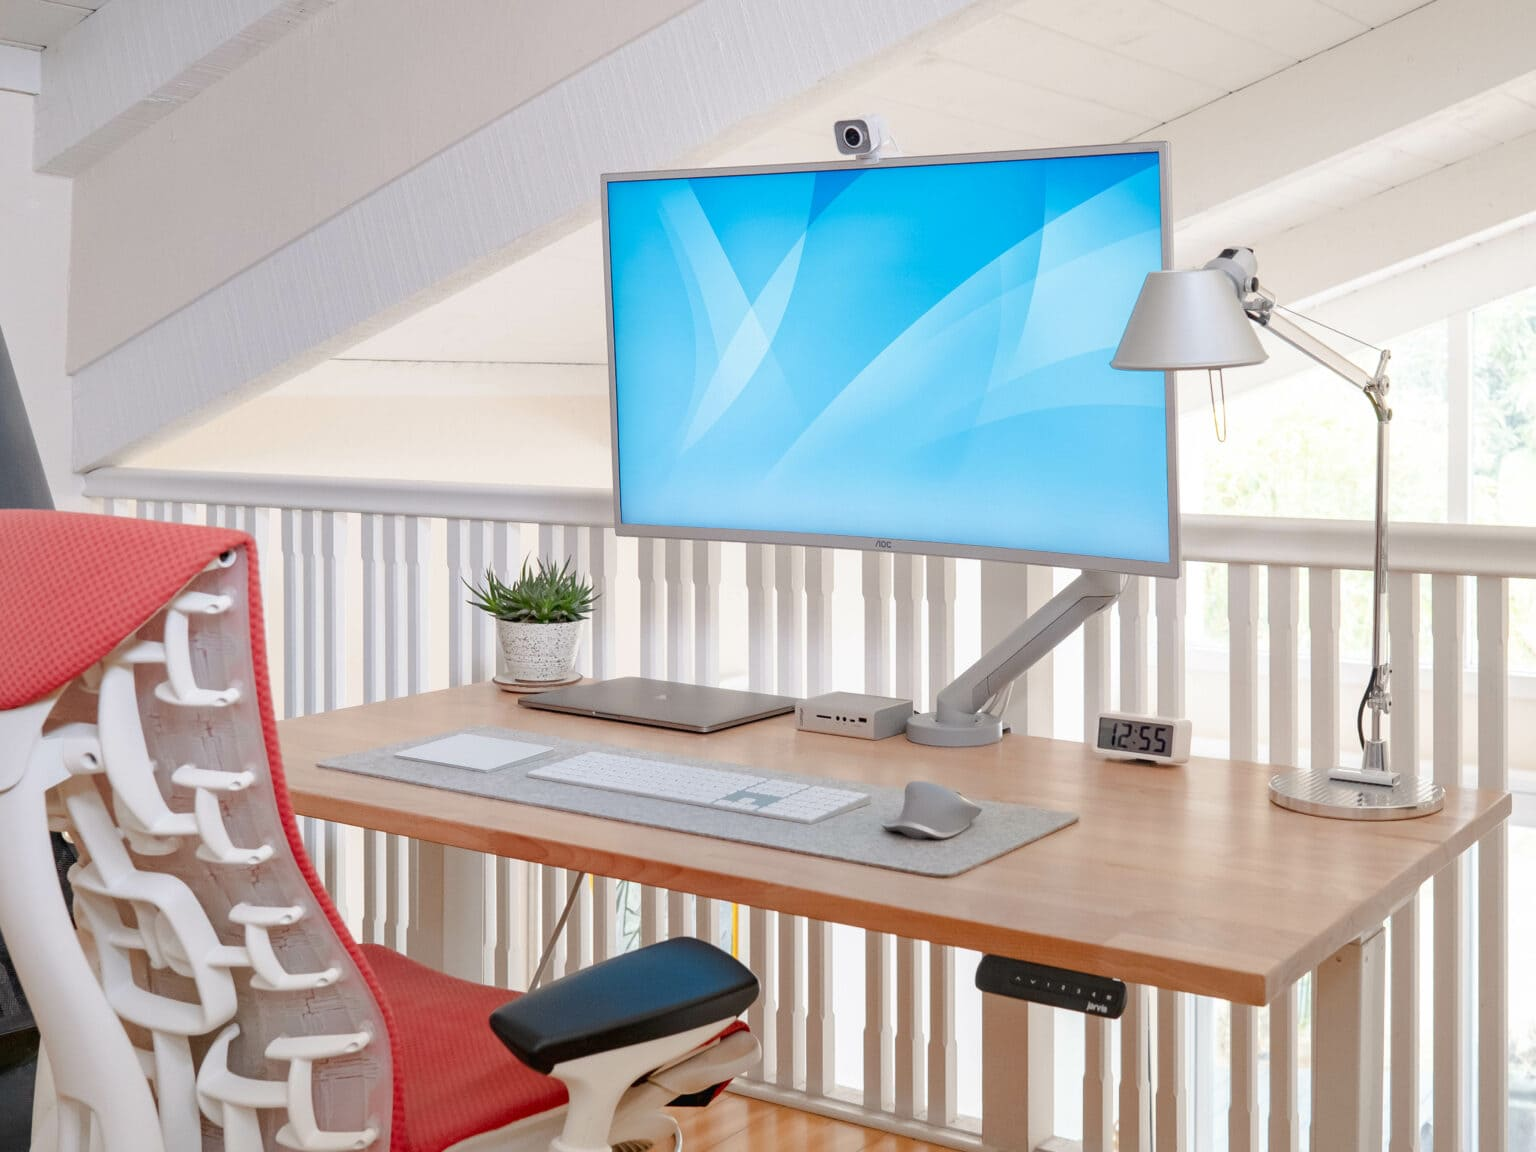 Arun Venkatesan's setup is a light and airy marriage of form and function.